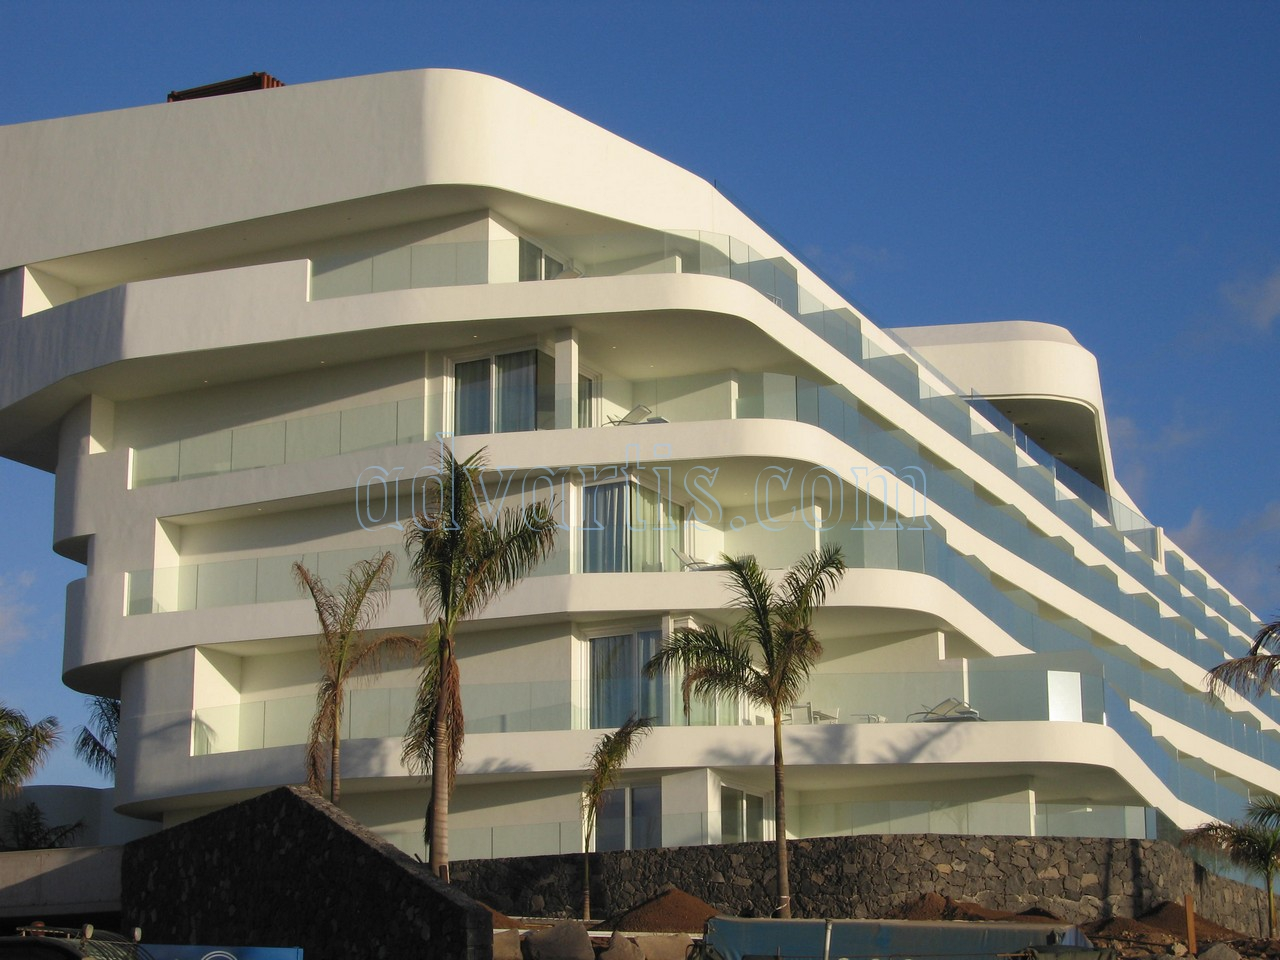 Royal Hotel Tenerife